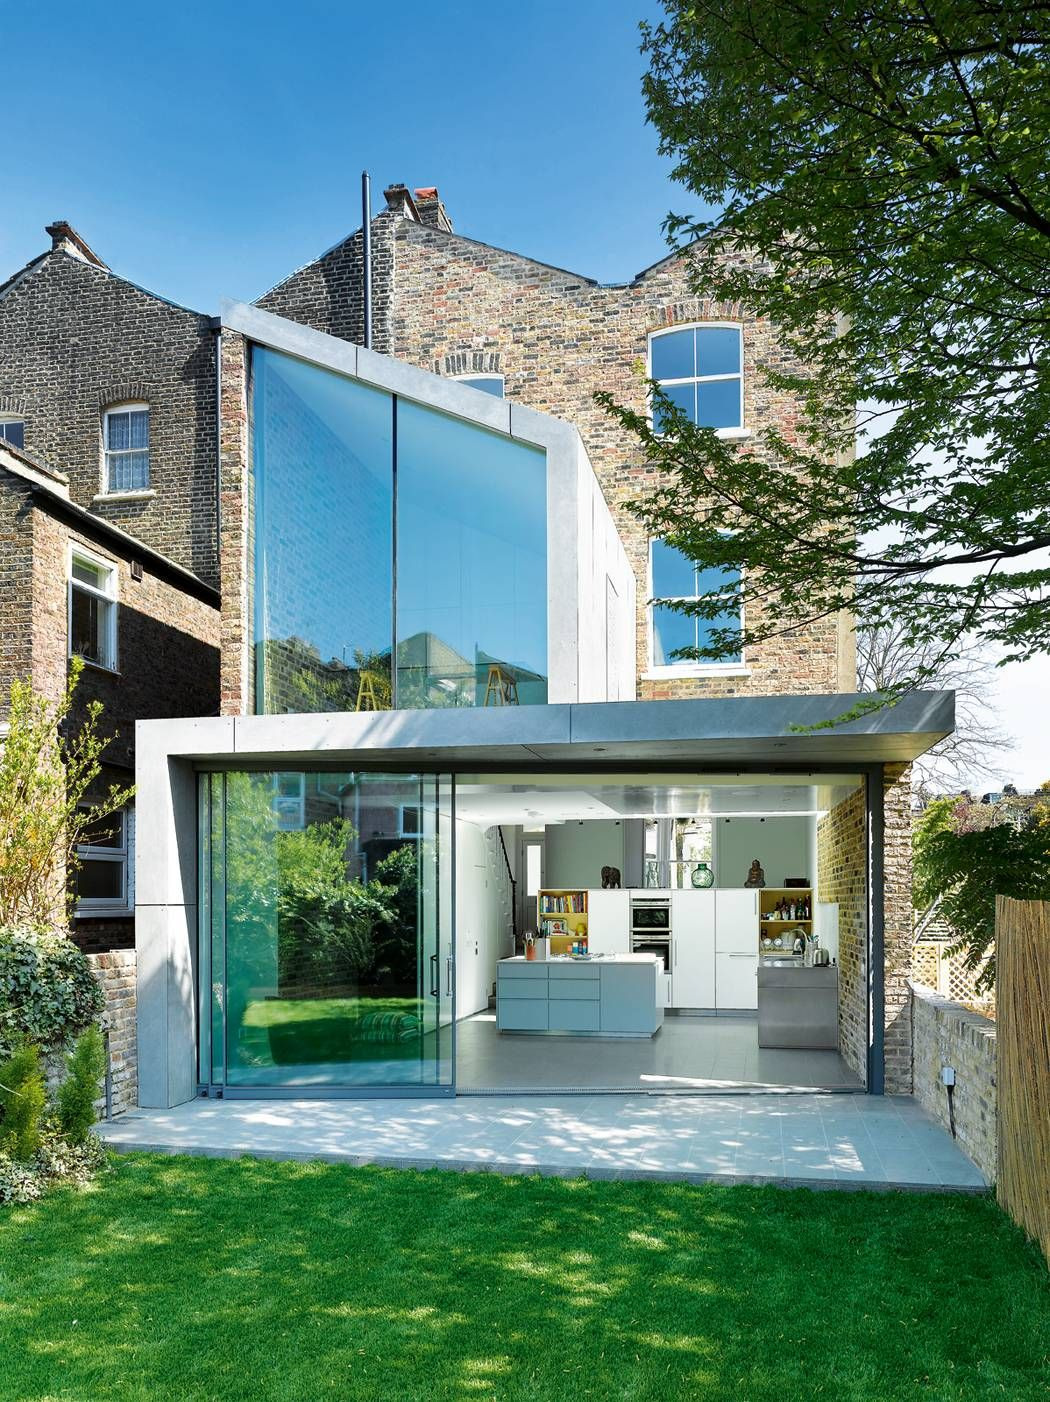 The Modern House Uk Fresh A Contemporary Extension to A Victorian Home by Robert Dye